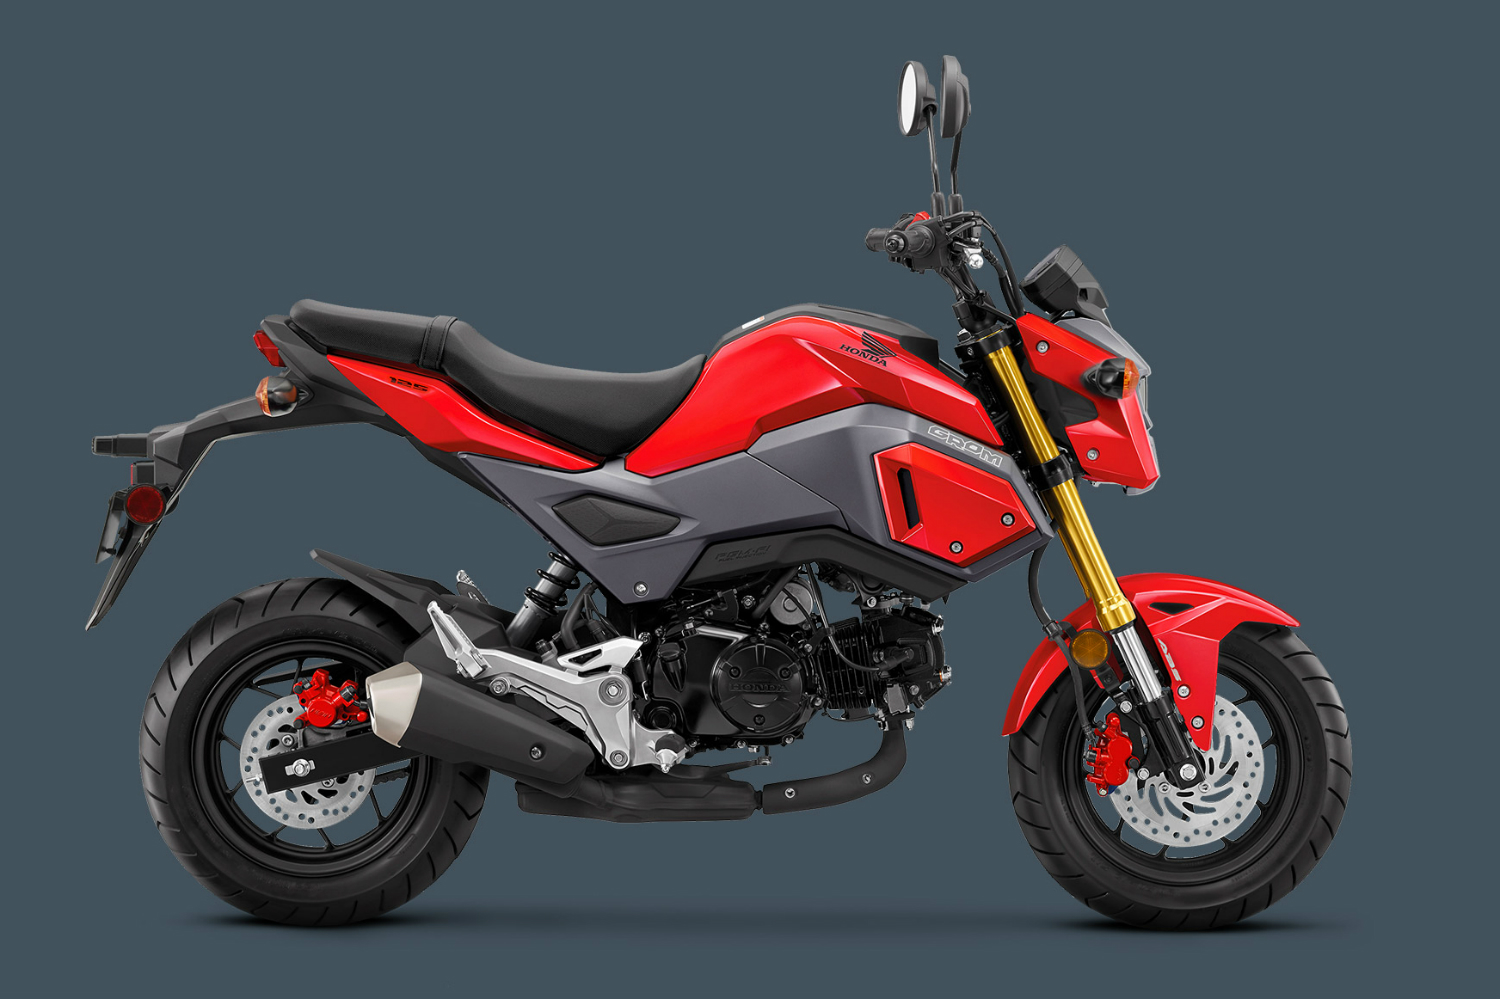 New Honda Msx125 Announced Motorcycle News New .html ...